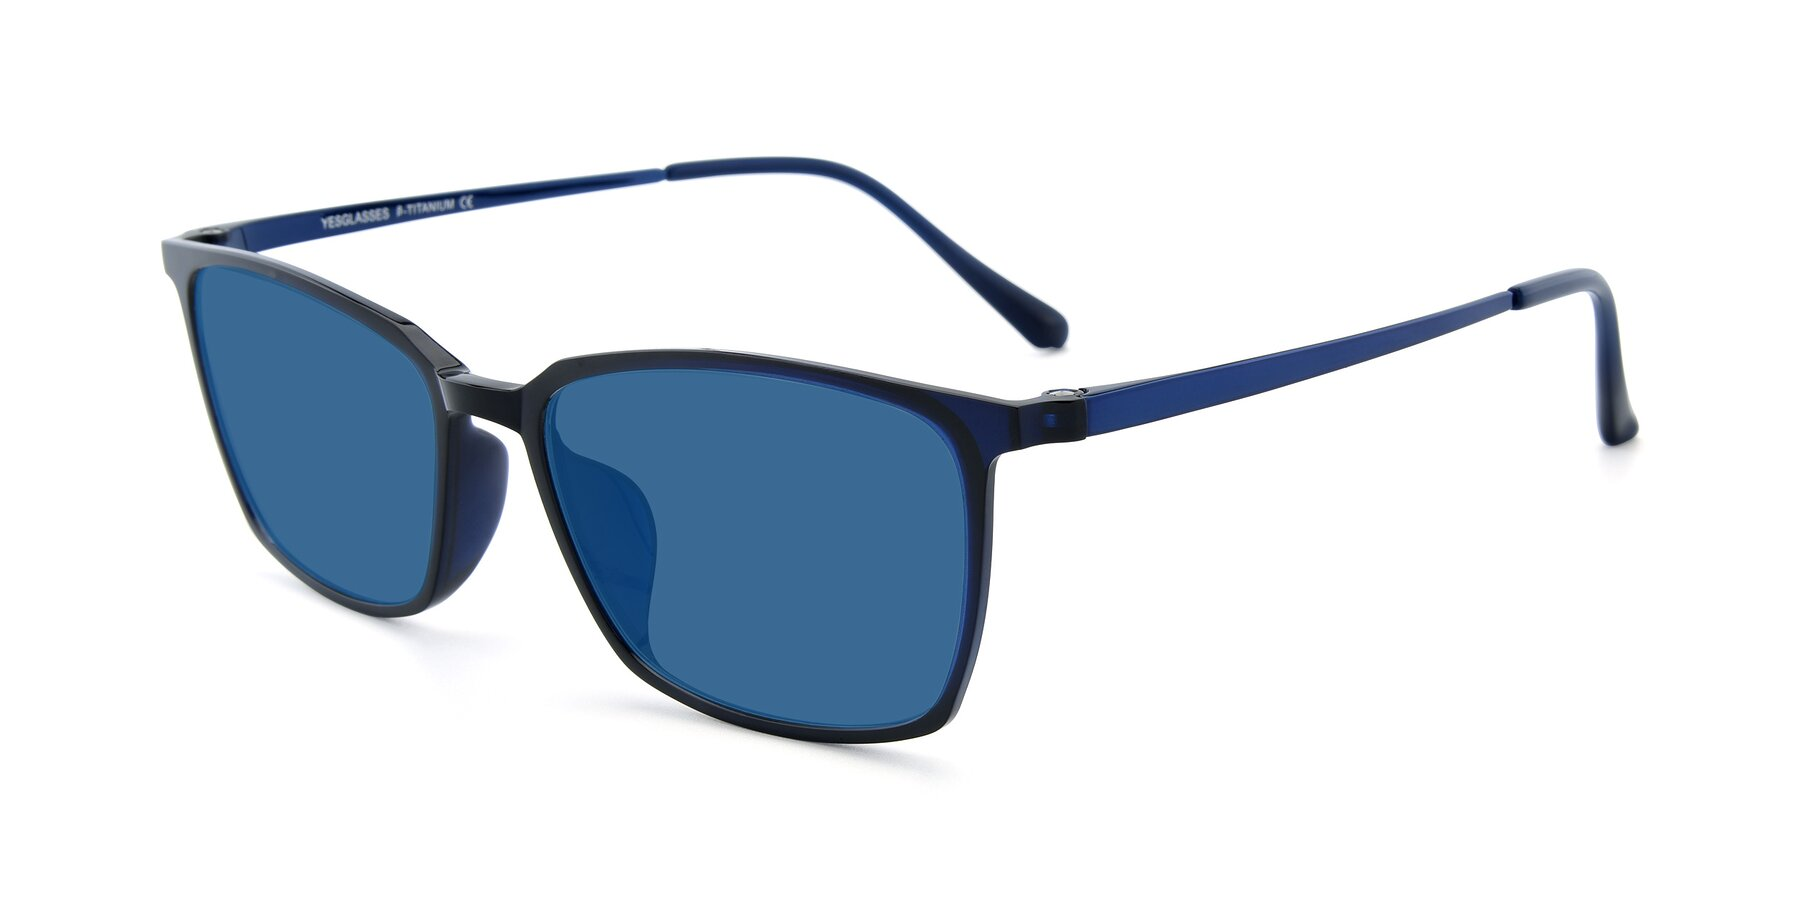 Angle of XC-5009 in Blue with Blue Tinted Lenses